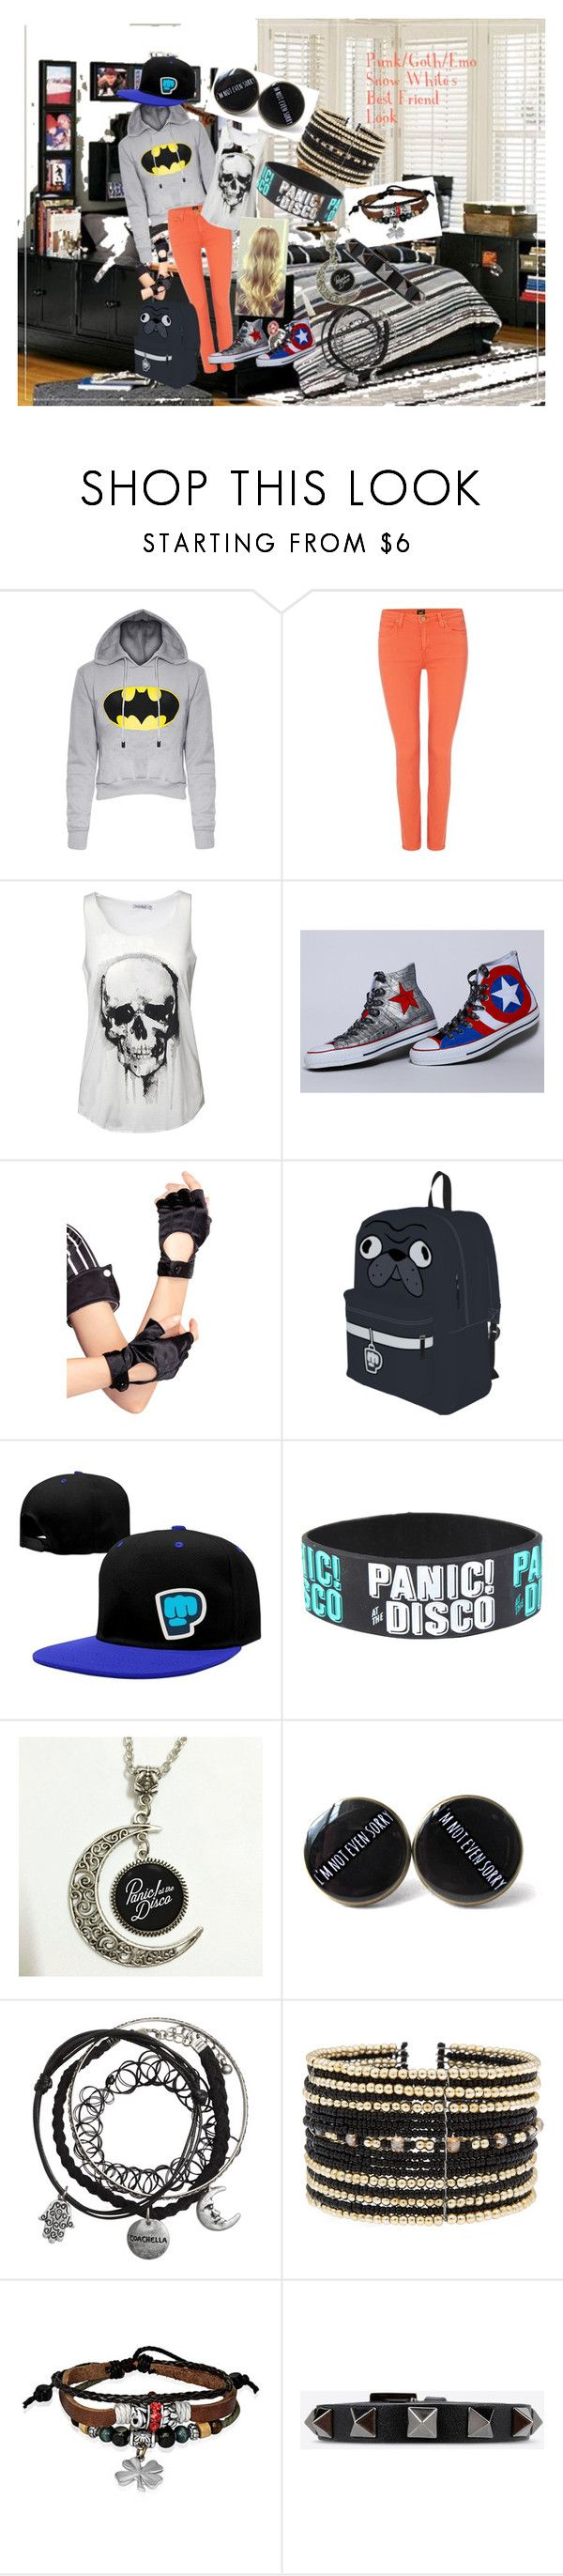 """Punk/Emo/Goth Snow White's Best Friend Look"" by adelle-louise-istead on Polyvore featuring Lee, Leg Avenue, Eloquii, Bling Jewelry and Valentino"